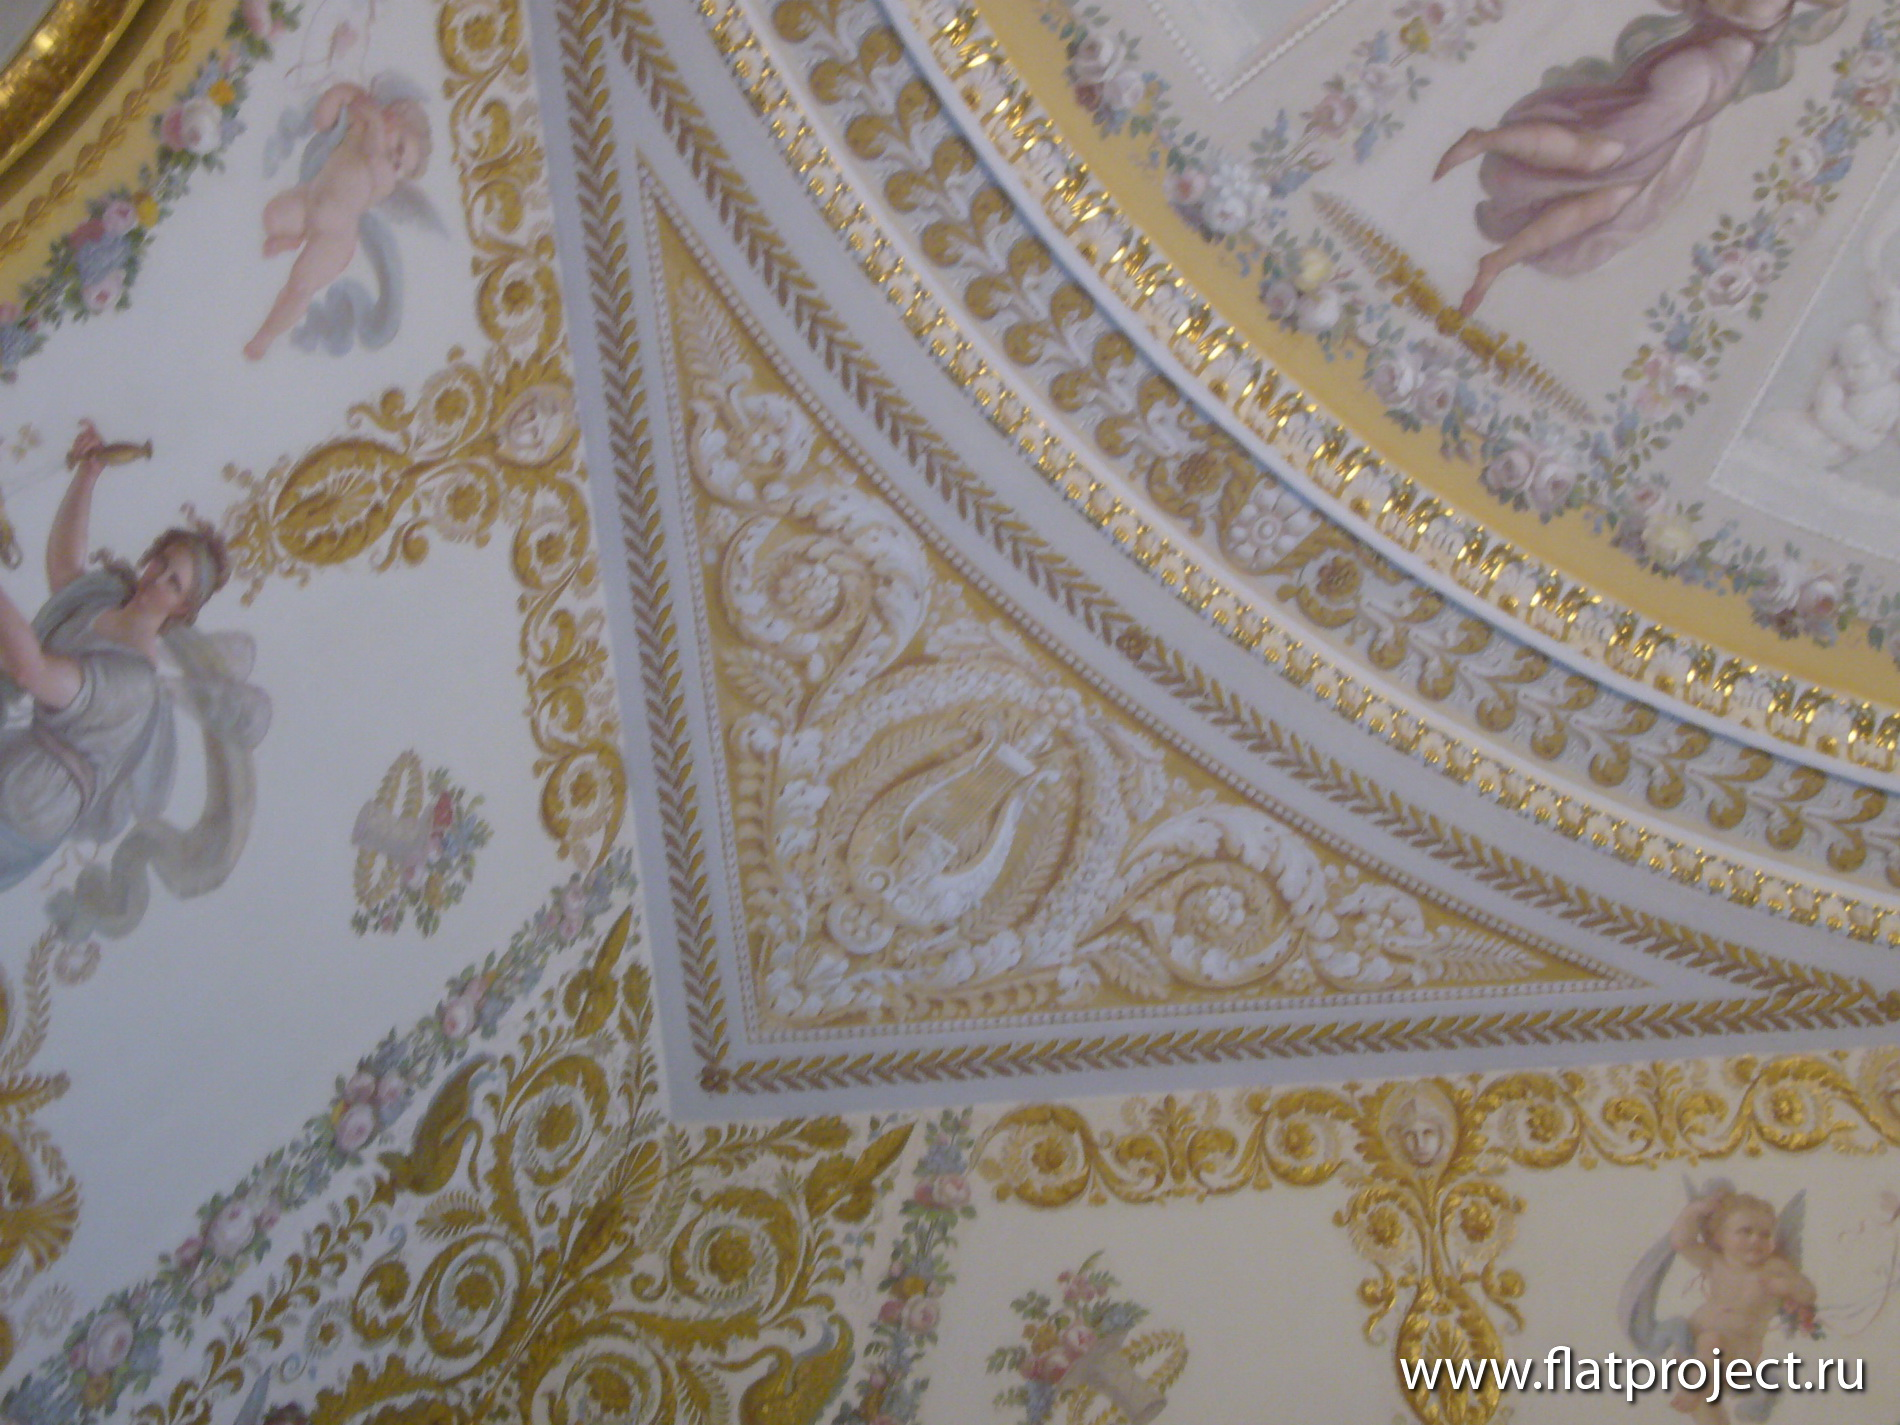 The State Russian museum interiors – photo 52